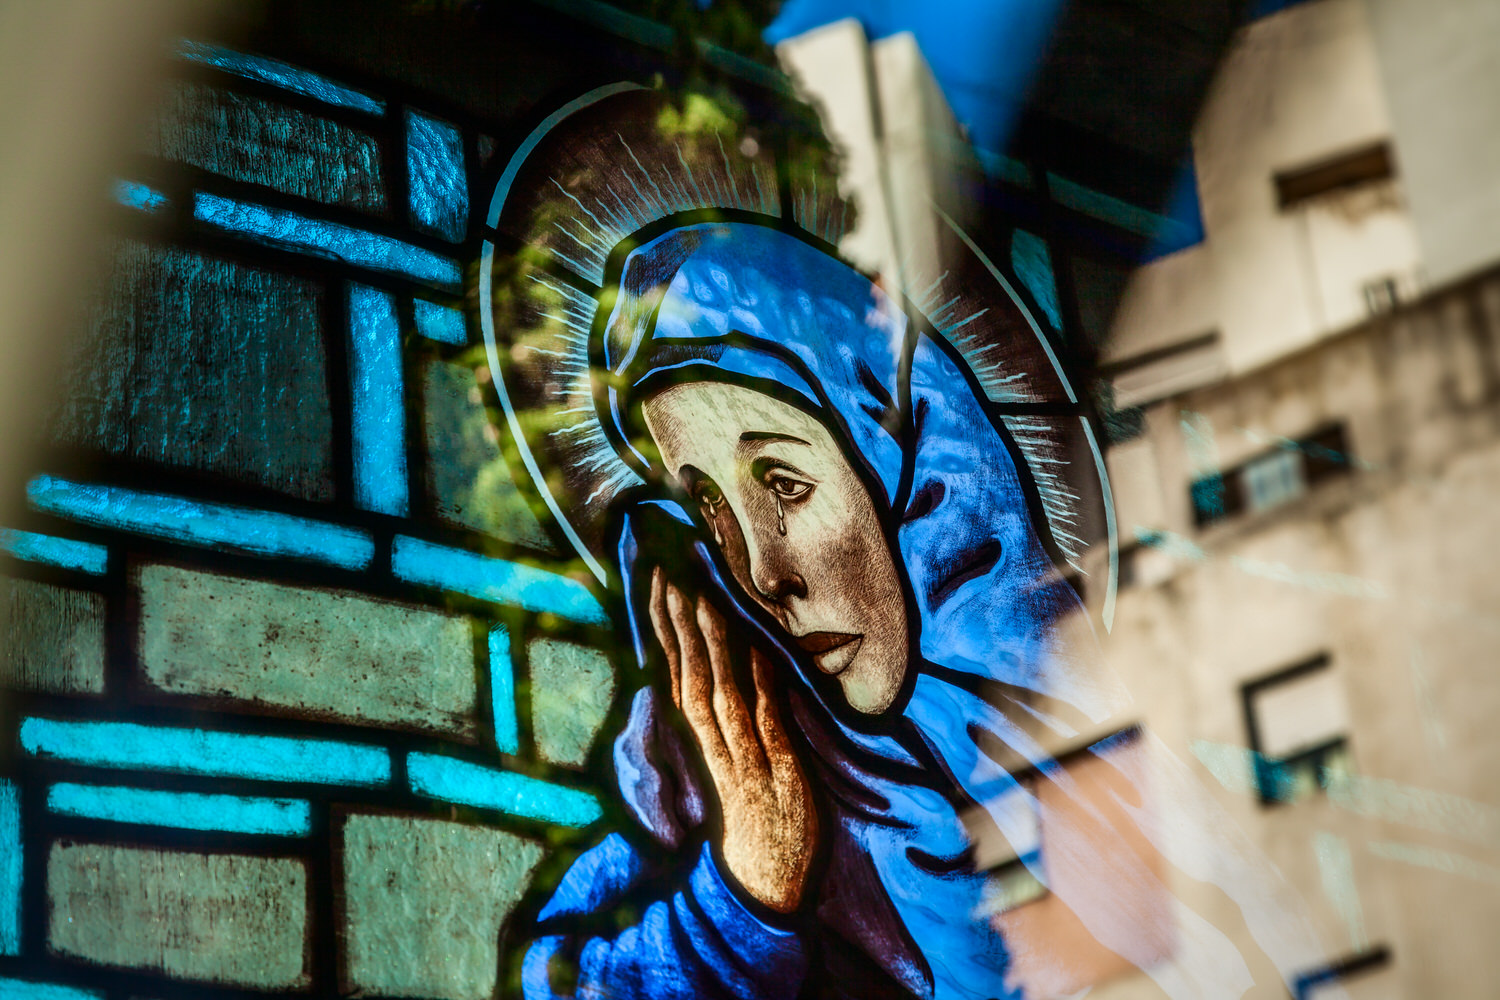 An image of the    Madonna    shedding tears at    La Recoleta Cemetery    in    Buenos Aires, Argentina   . The image hints at the ever encroaching urban sprawl in the background of this beautiful and historic cemetery.